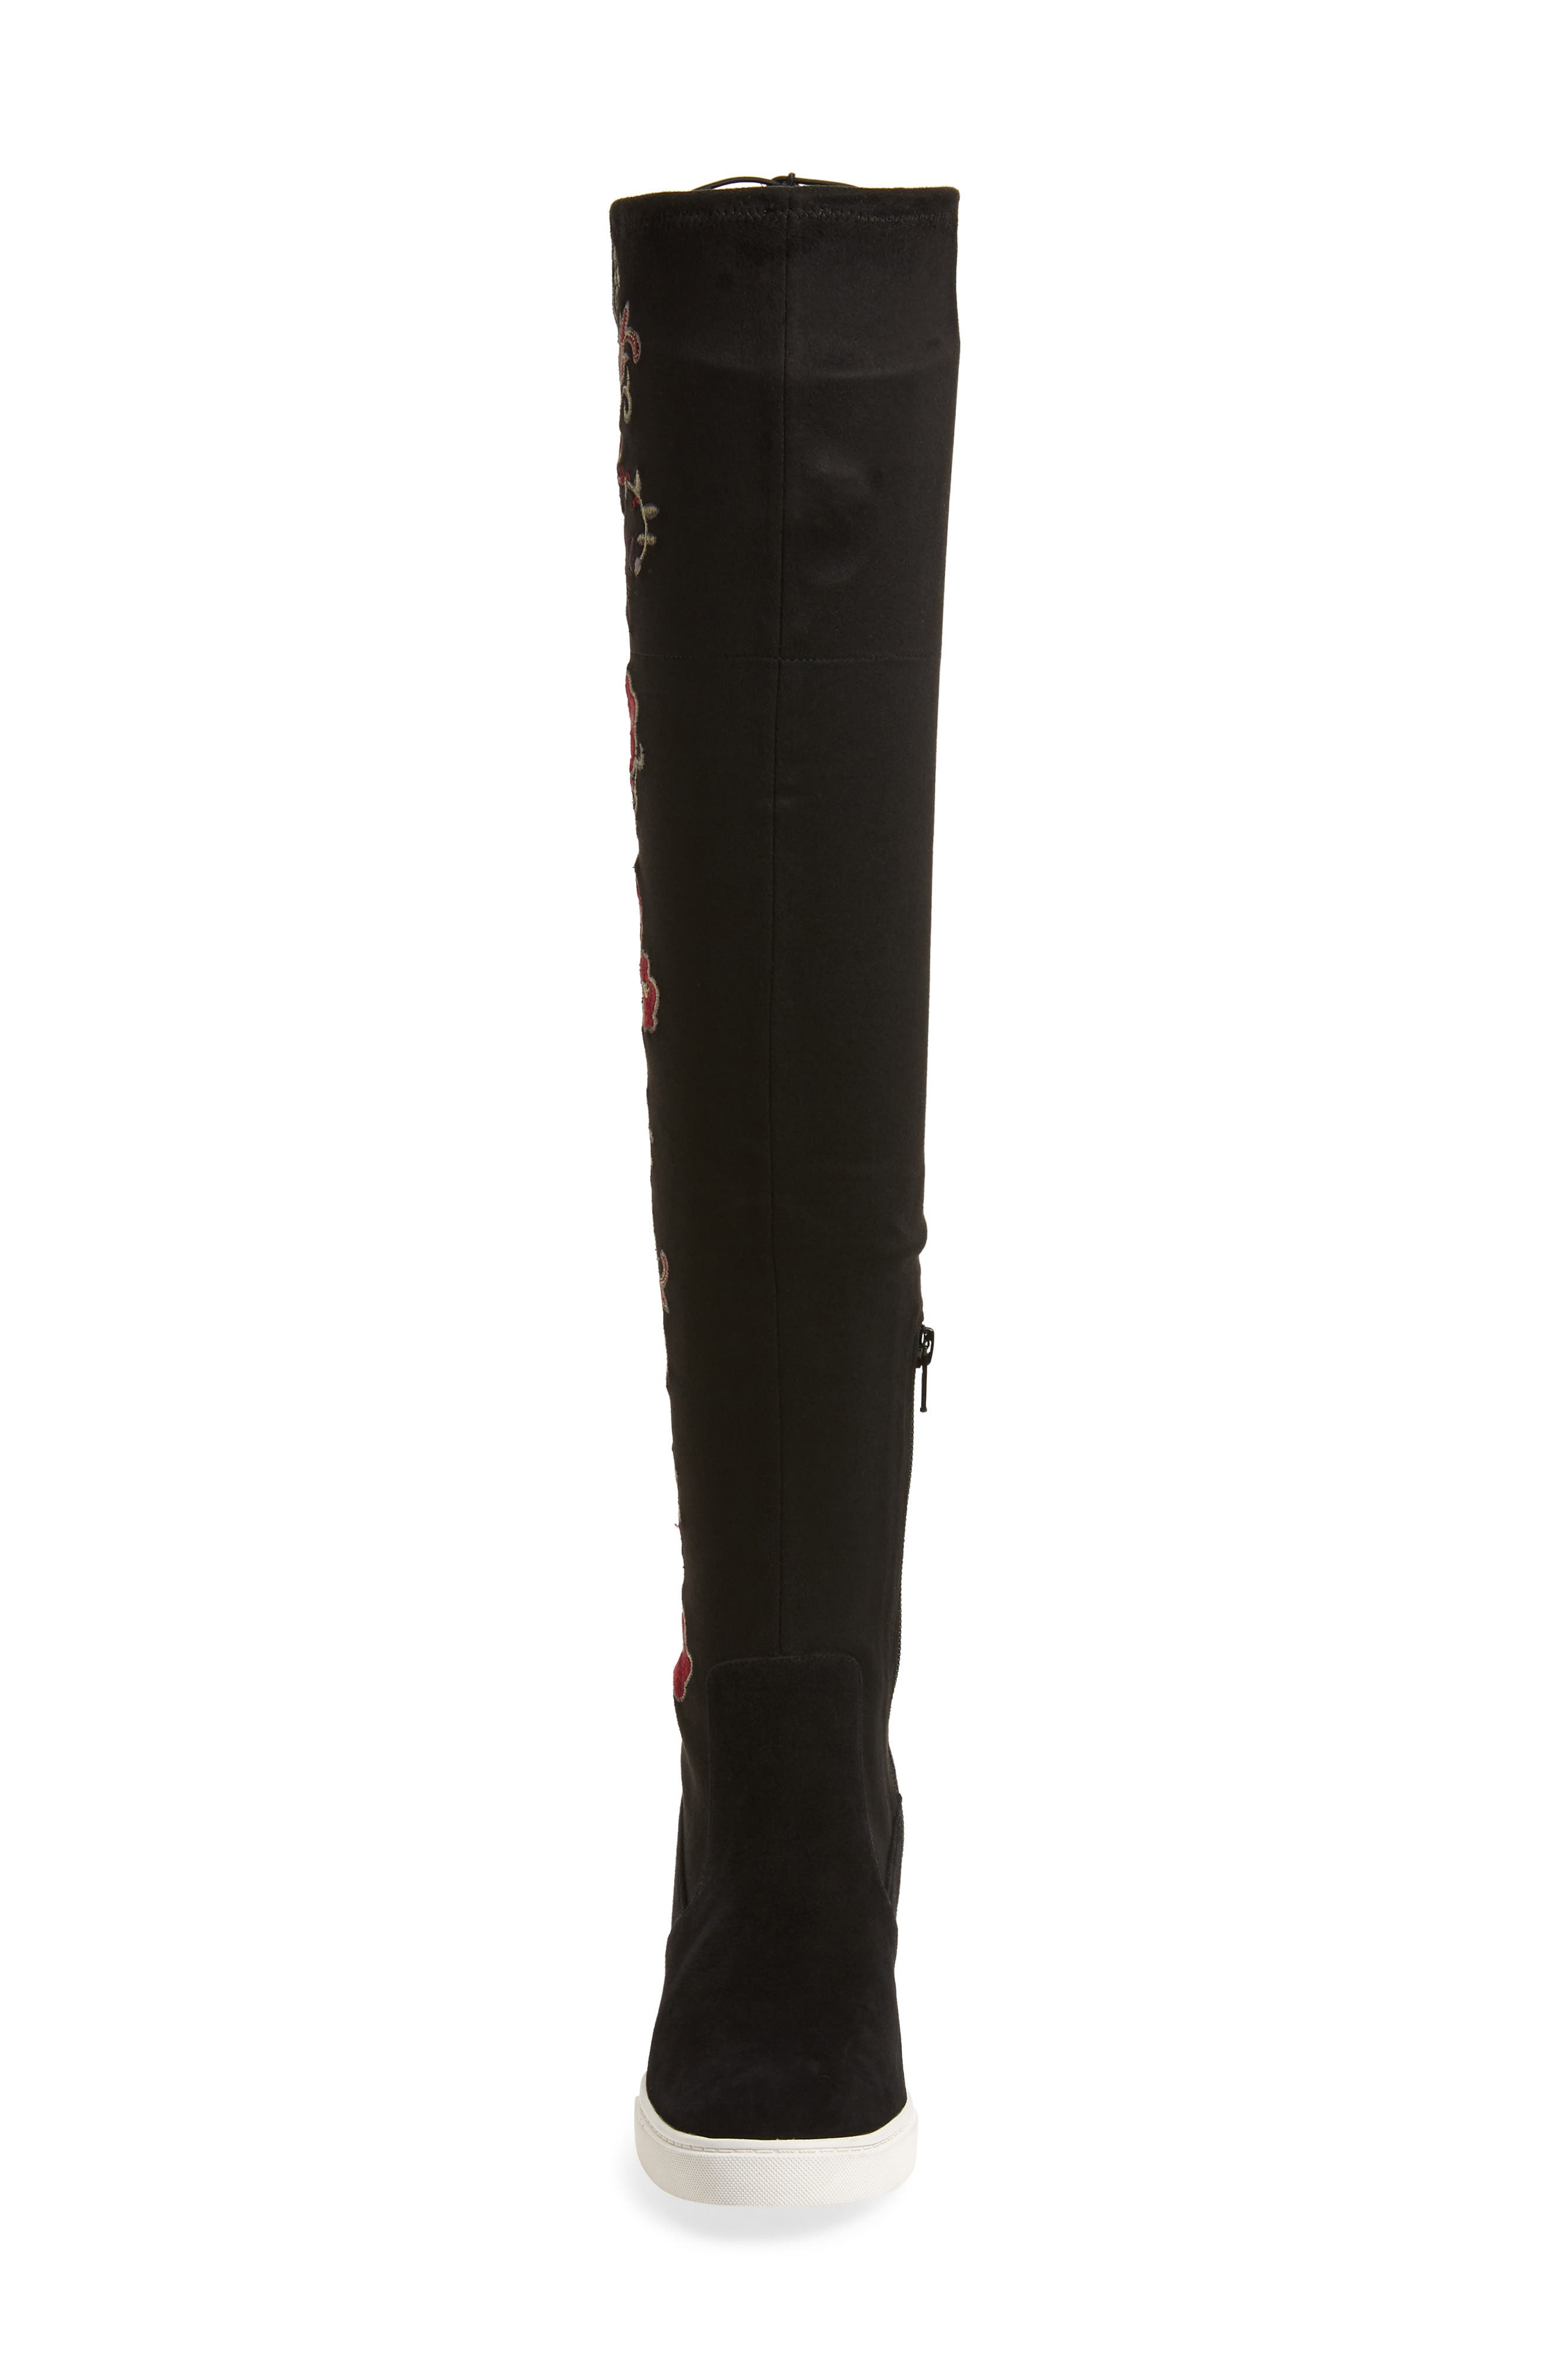 Thea Over the Knee Boot,                             Alternate thumbnail 4, color,                             BLACK EMBROIDERY FABRIC